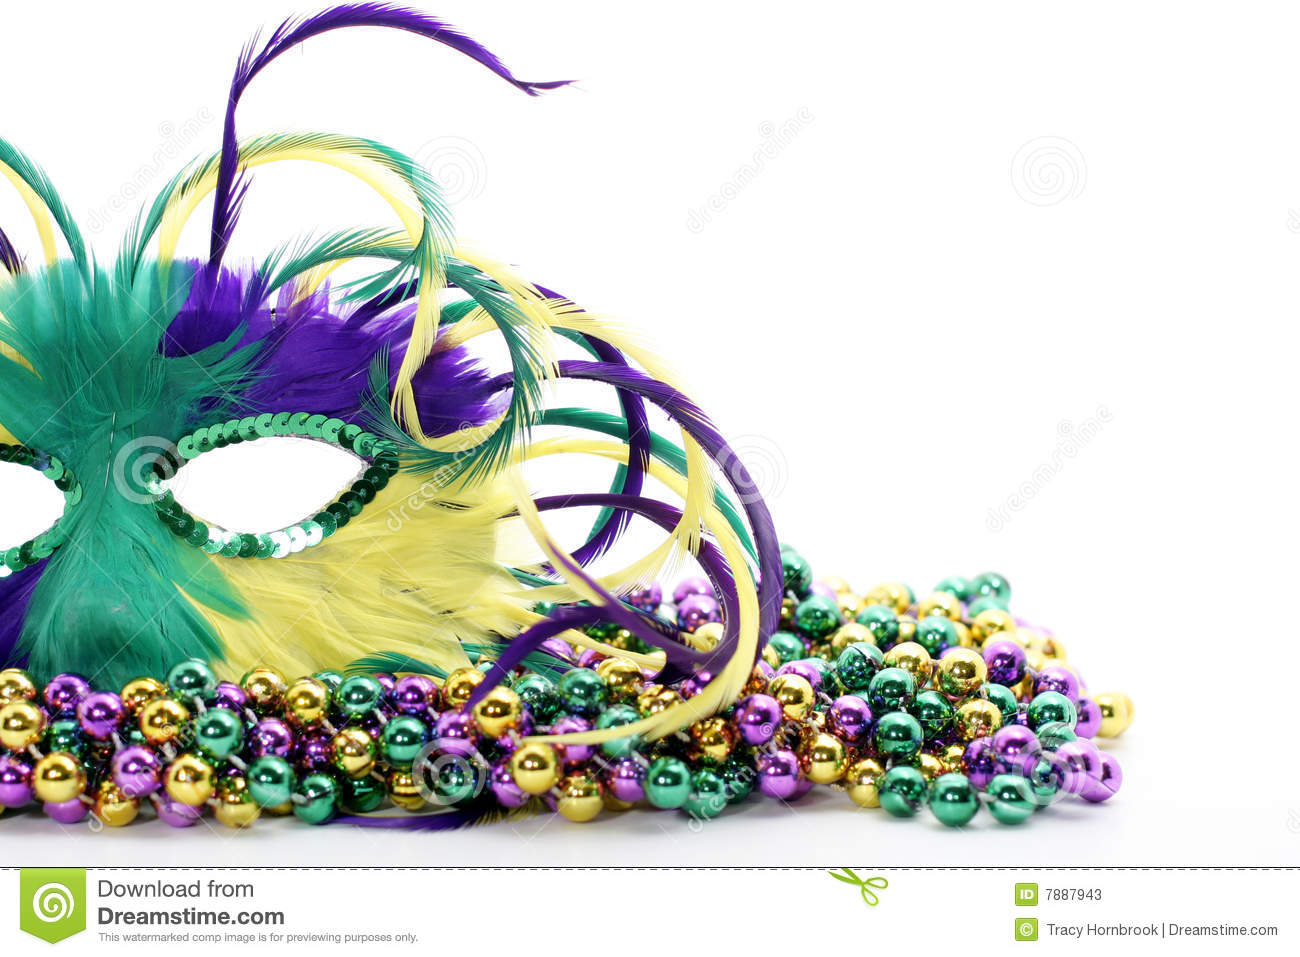 revived when what are to ends mister carnival season the post gras celebrating throw orleans revelry essential me again beads but in wrkf new tokens happens mardi something